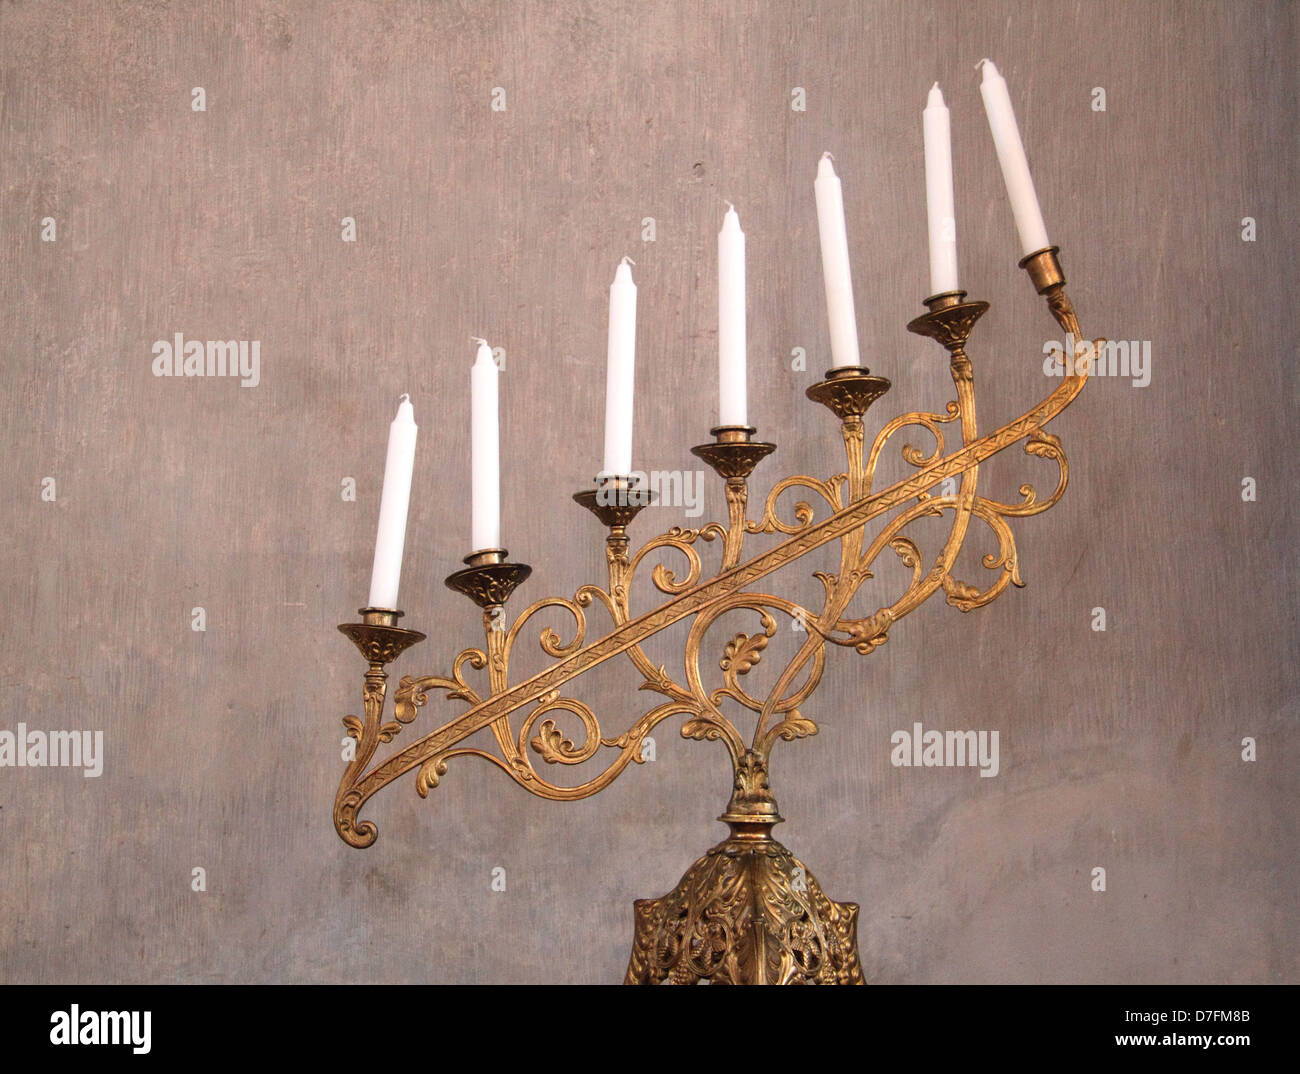 A golden seven-branched Menorah located by The Holy Ark At Tykocin (Tiktin) Synagogue, Poland - Stock Image